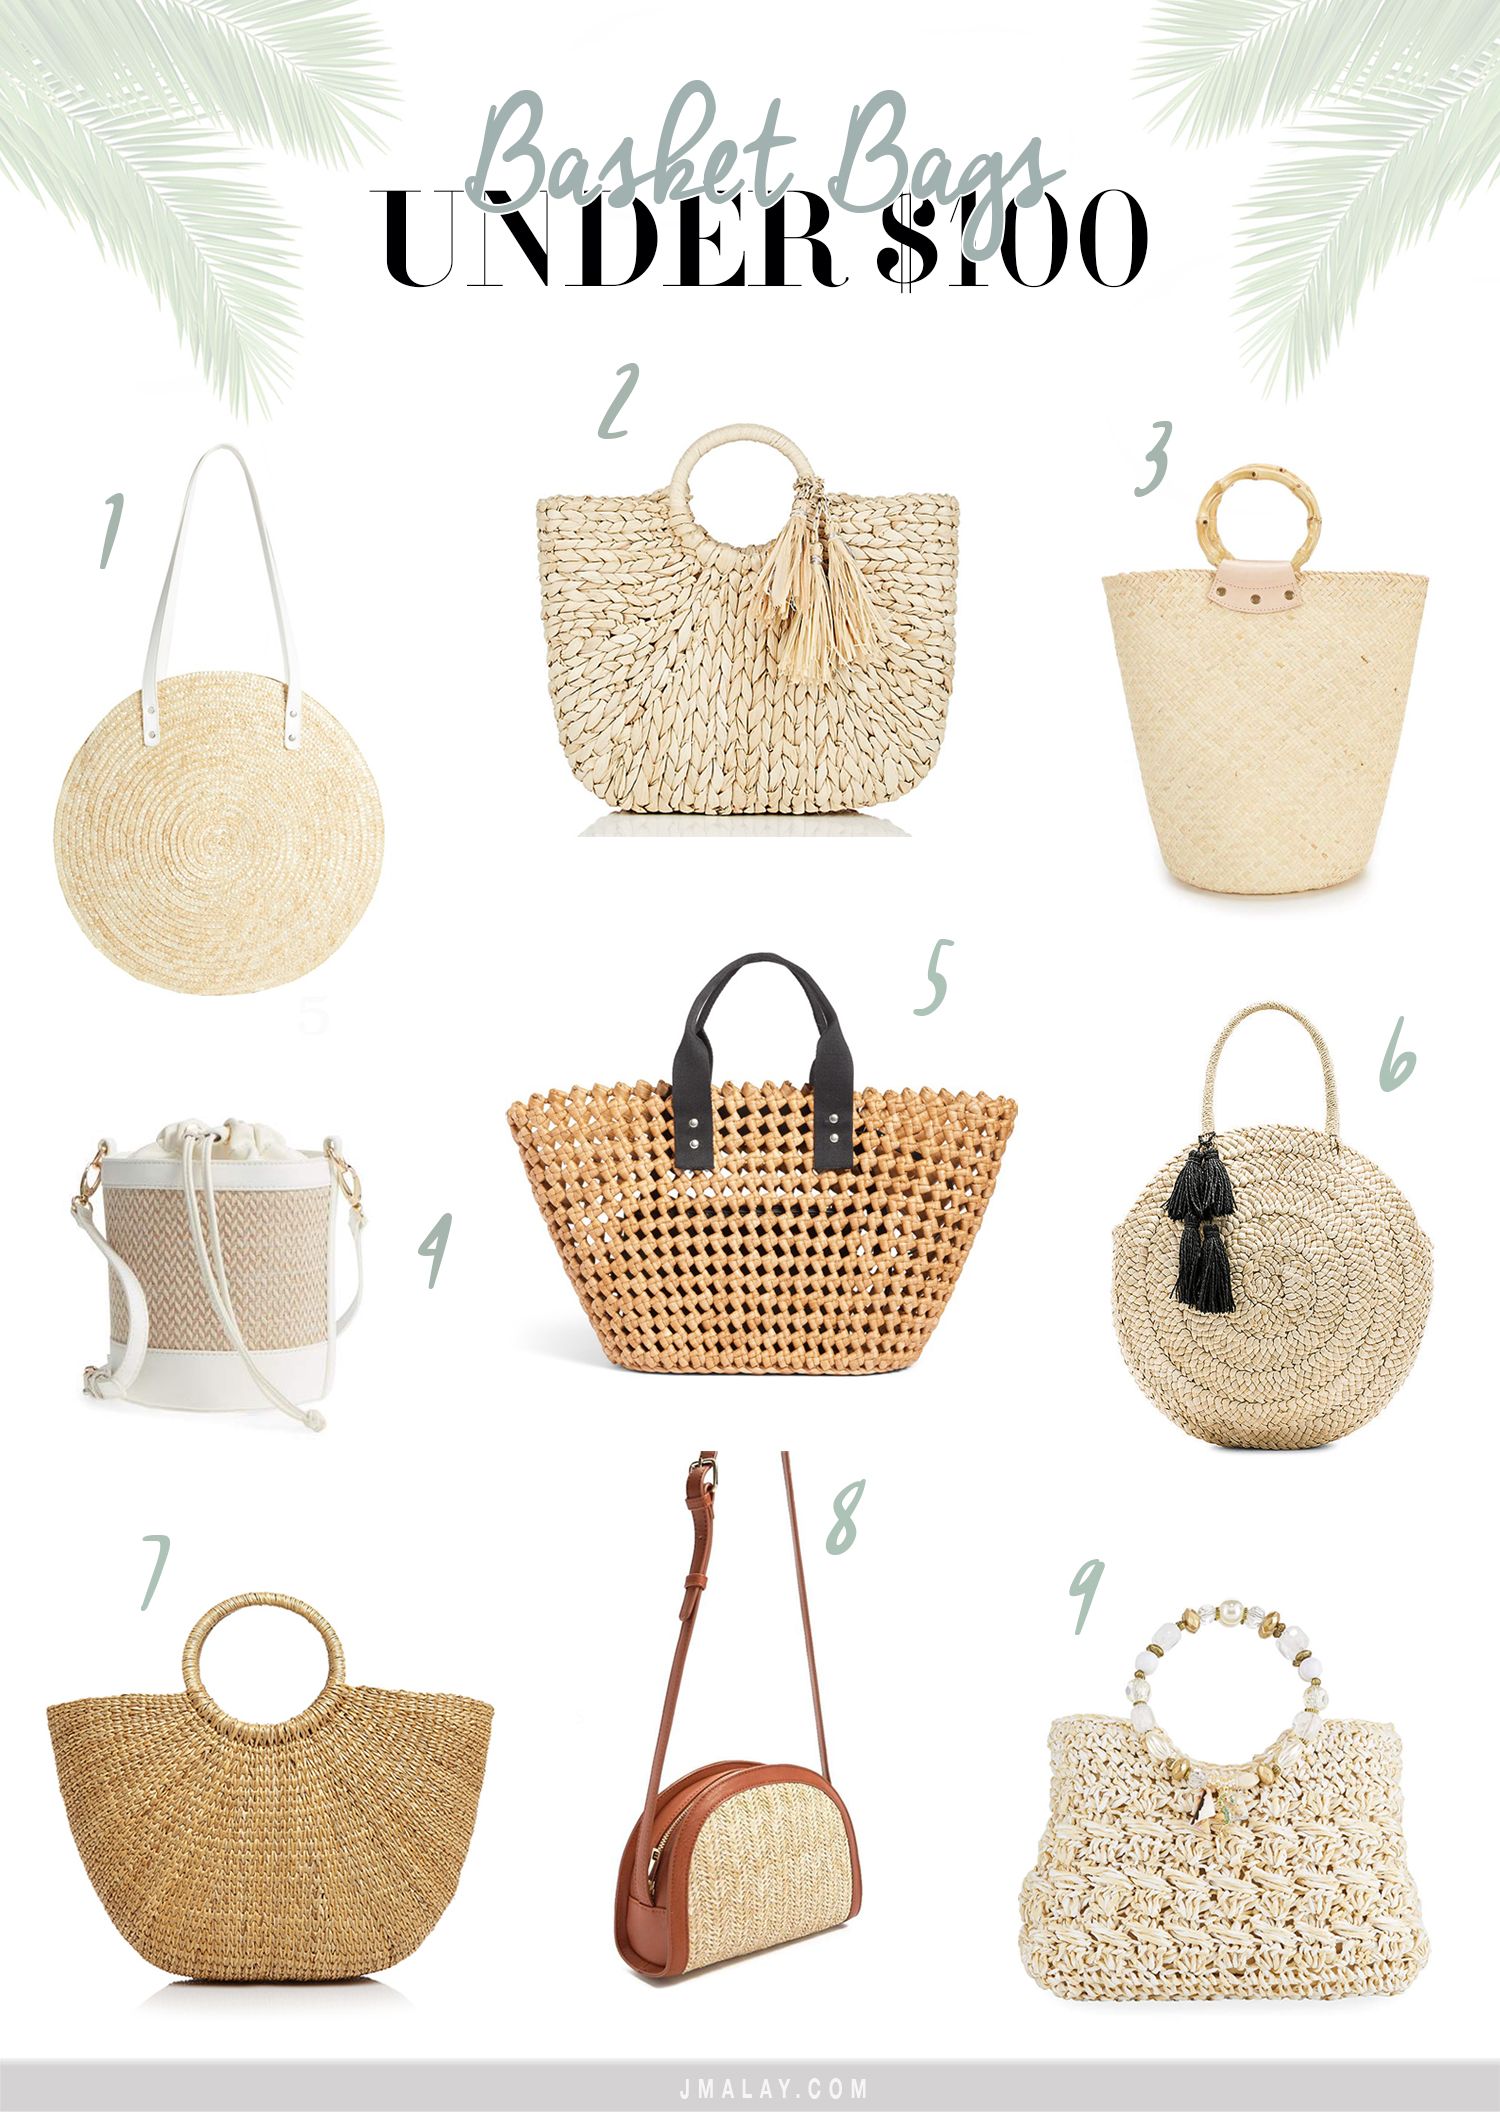 basket bags under $100 must-haves trendy shopping guide